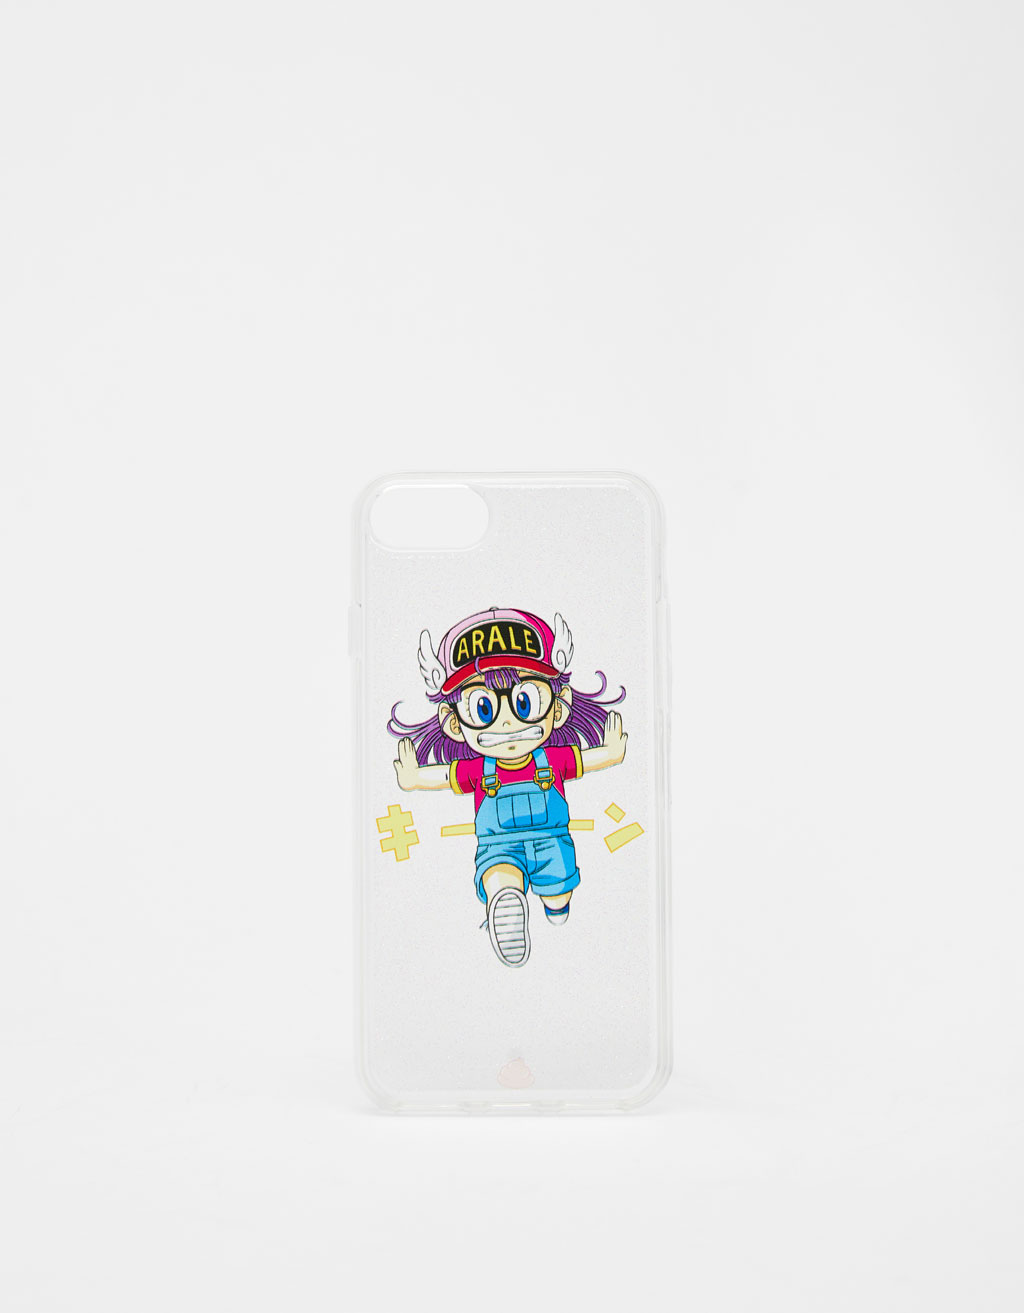 Carcasa transparente Arale iPhone 6 /6s/7/8